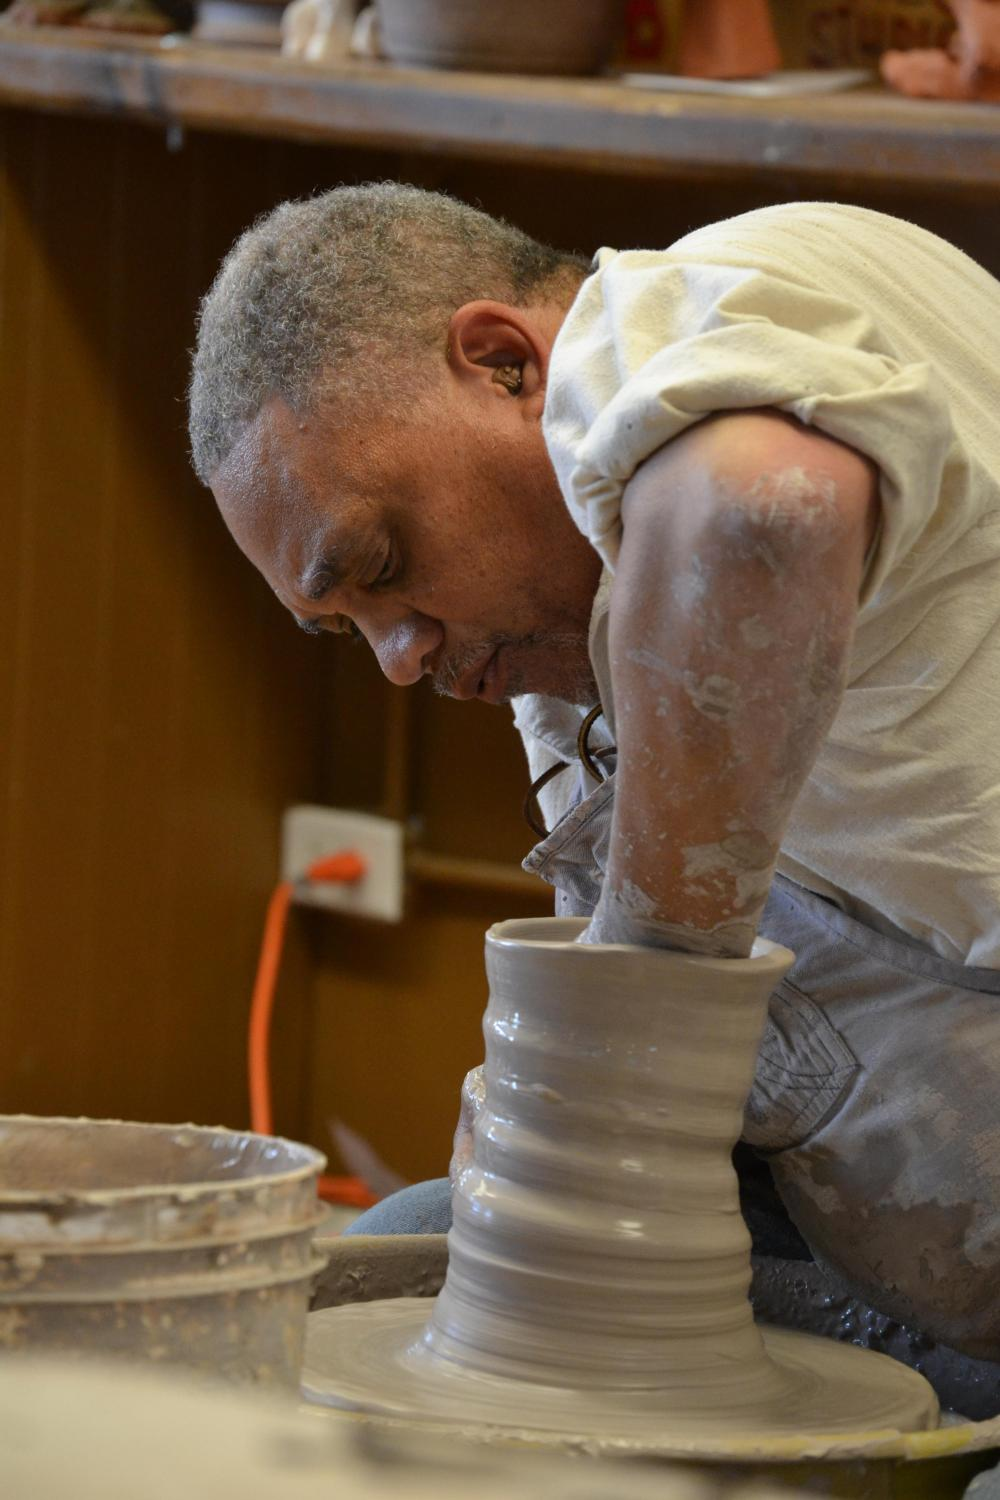 An African American ceramic artist leans forward over his spinning wheel turning a pot. The clay is covered in slip, so appears wet. He concentrates on his work, one hand inside the pot, the other outside, shaping as the clay spins on the wheel.